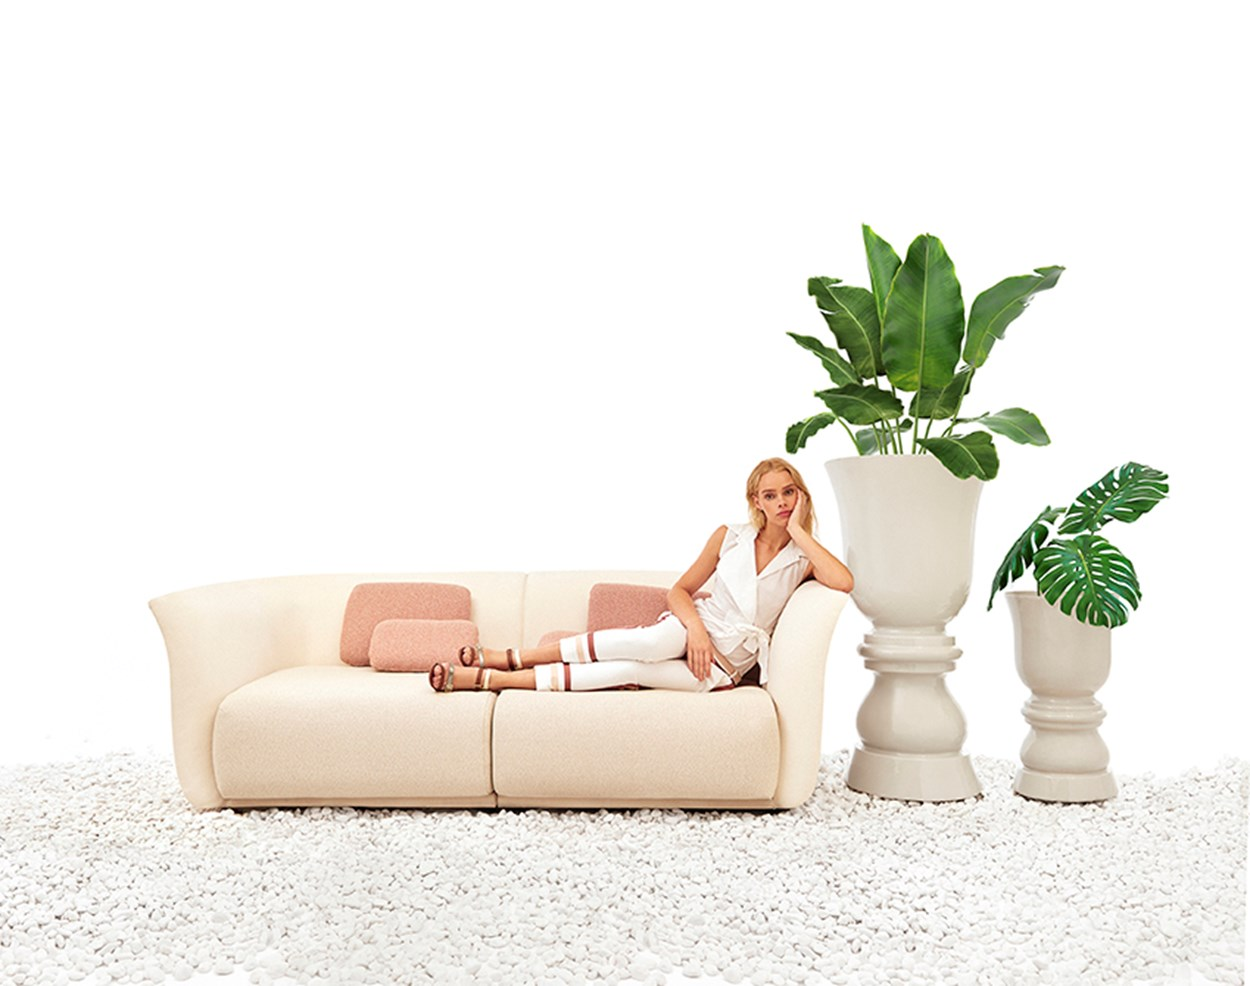 VONDOM_Suave-sofa-and-flower-pot (1).jpg